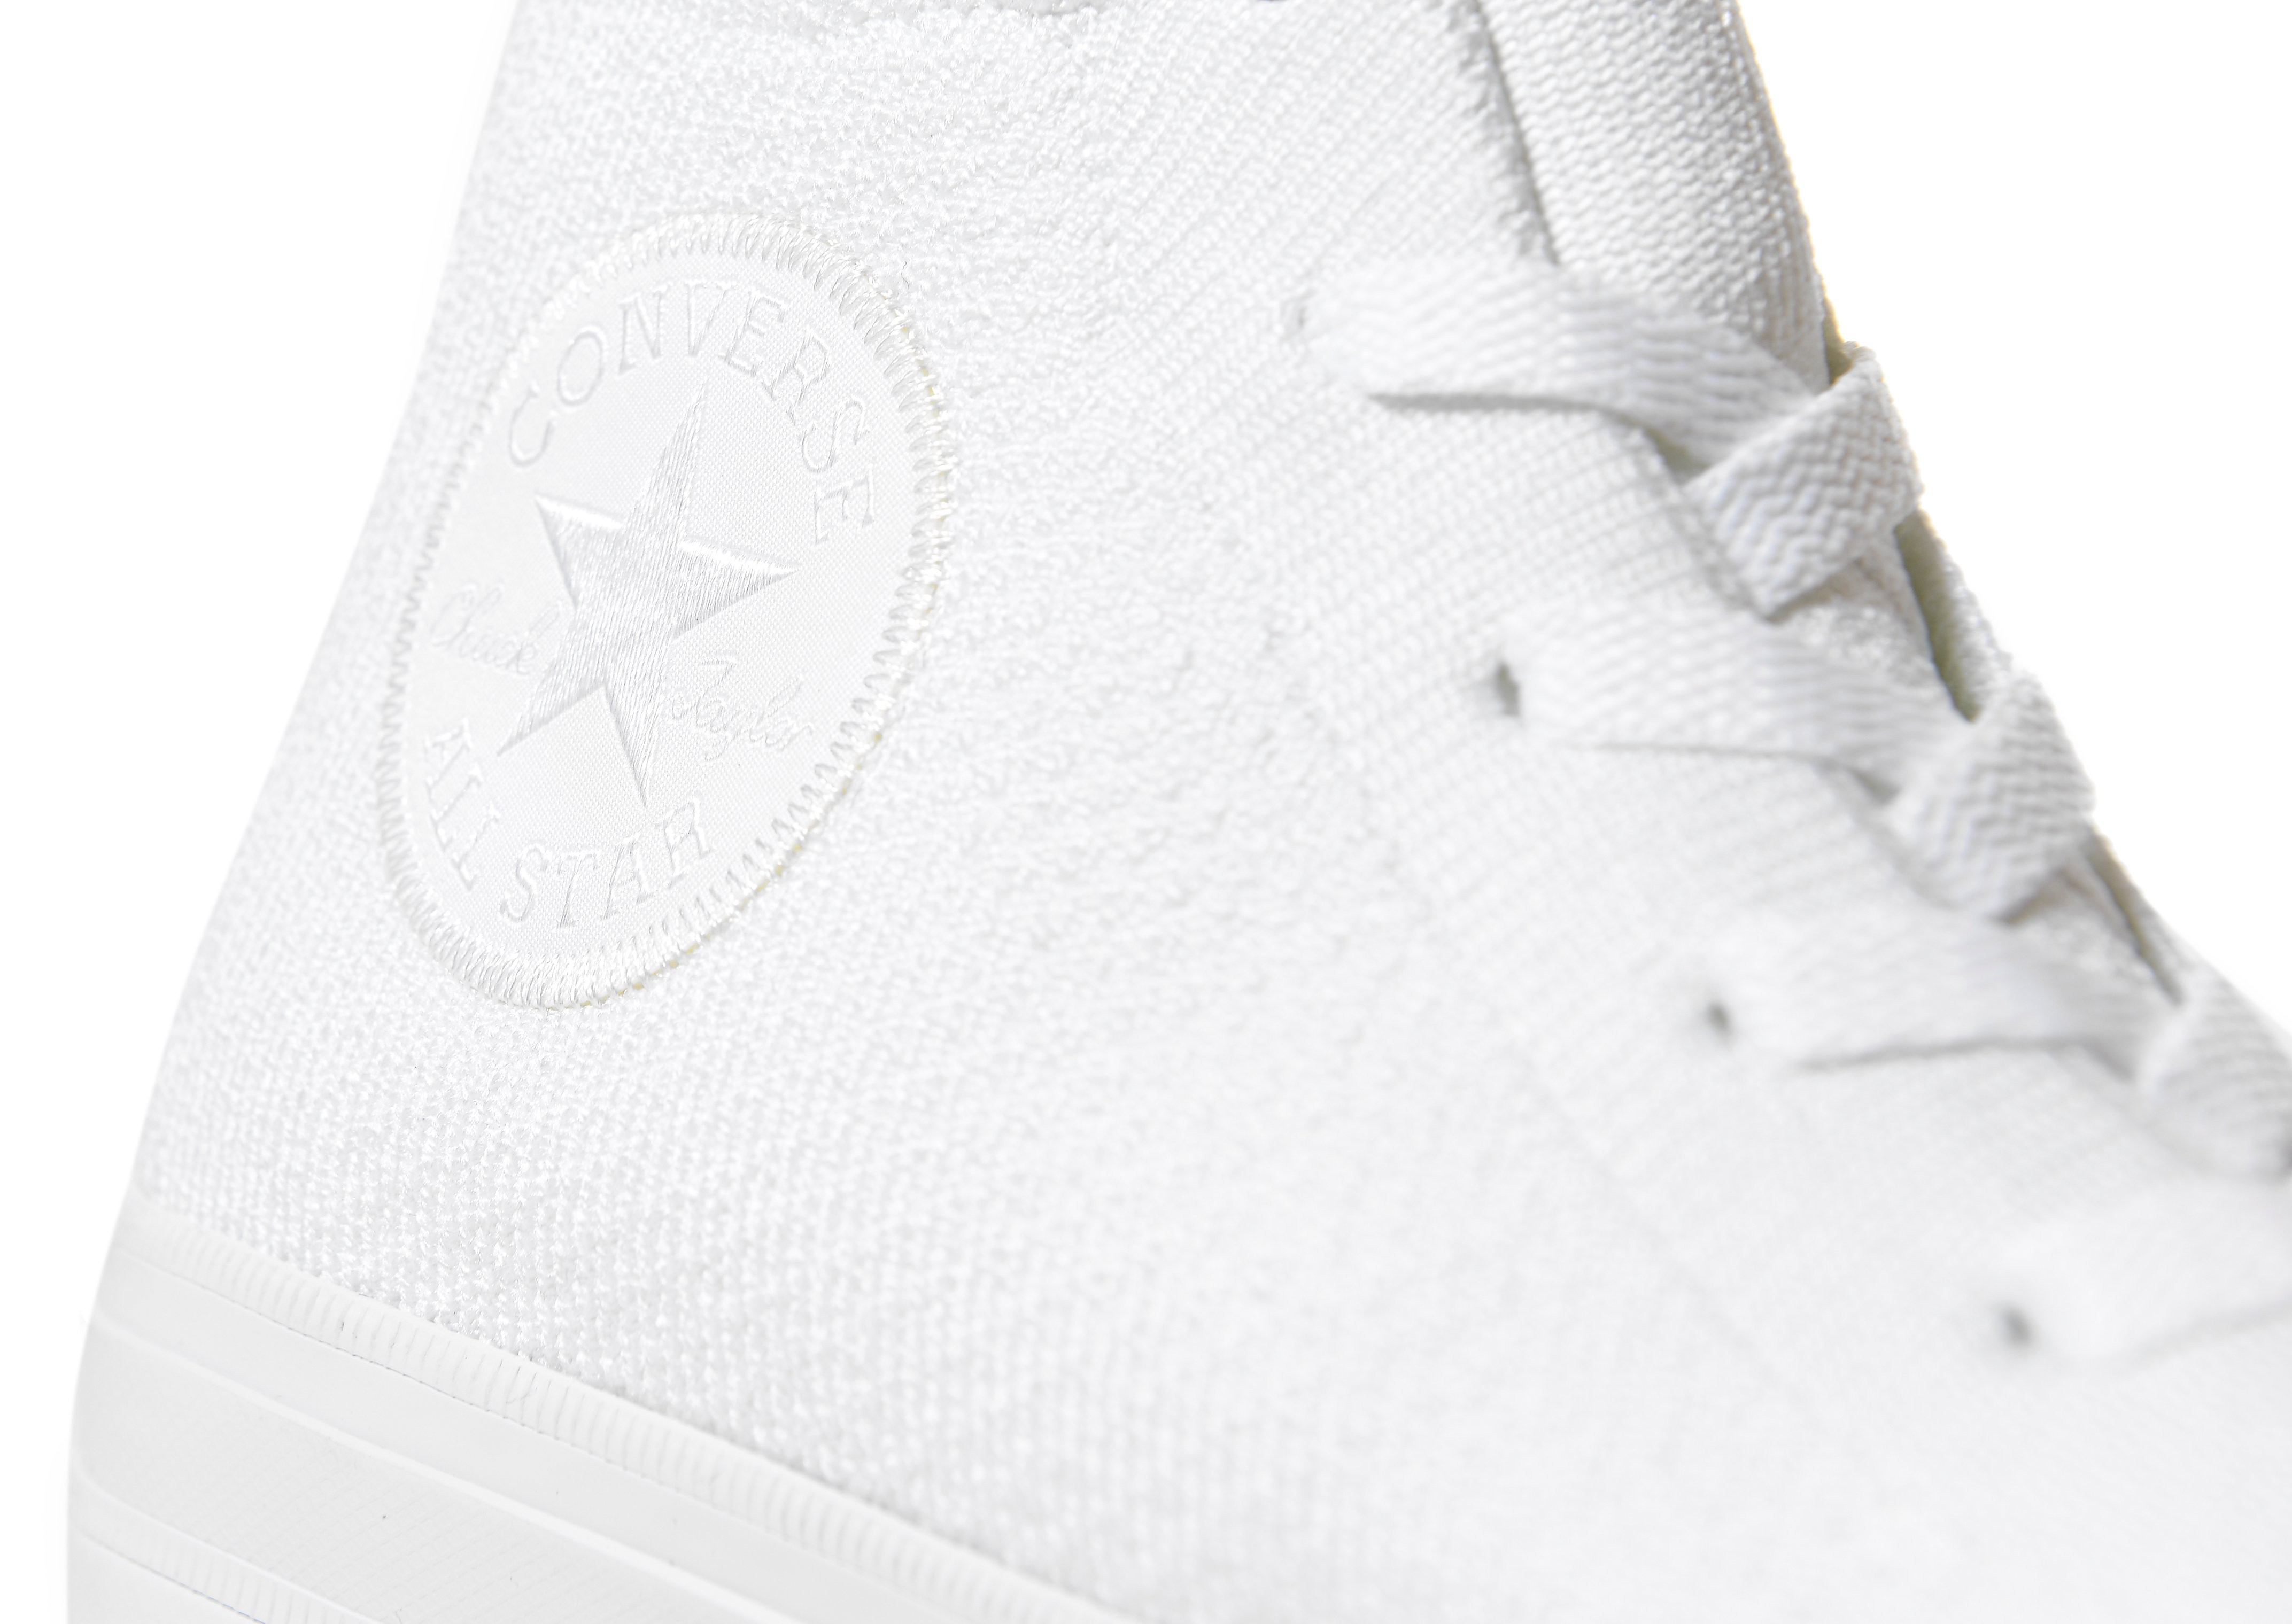 Converse Chuck Taylor All Star Flyknit pour femme